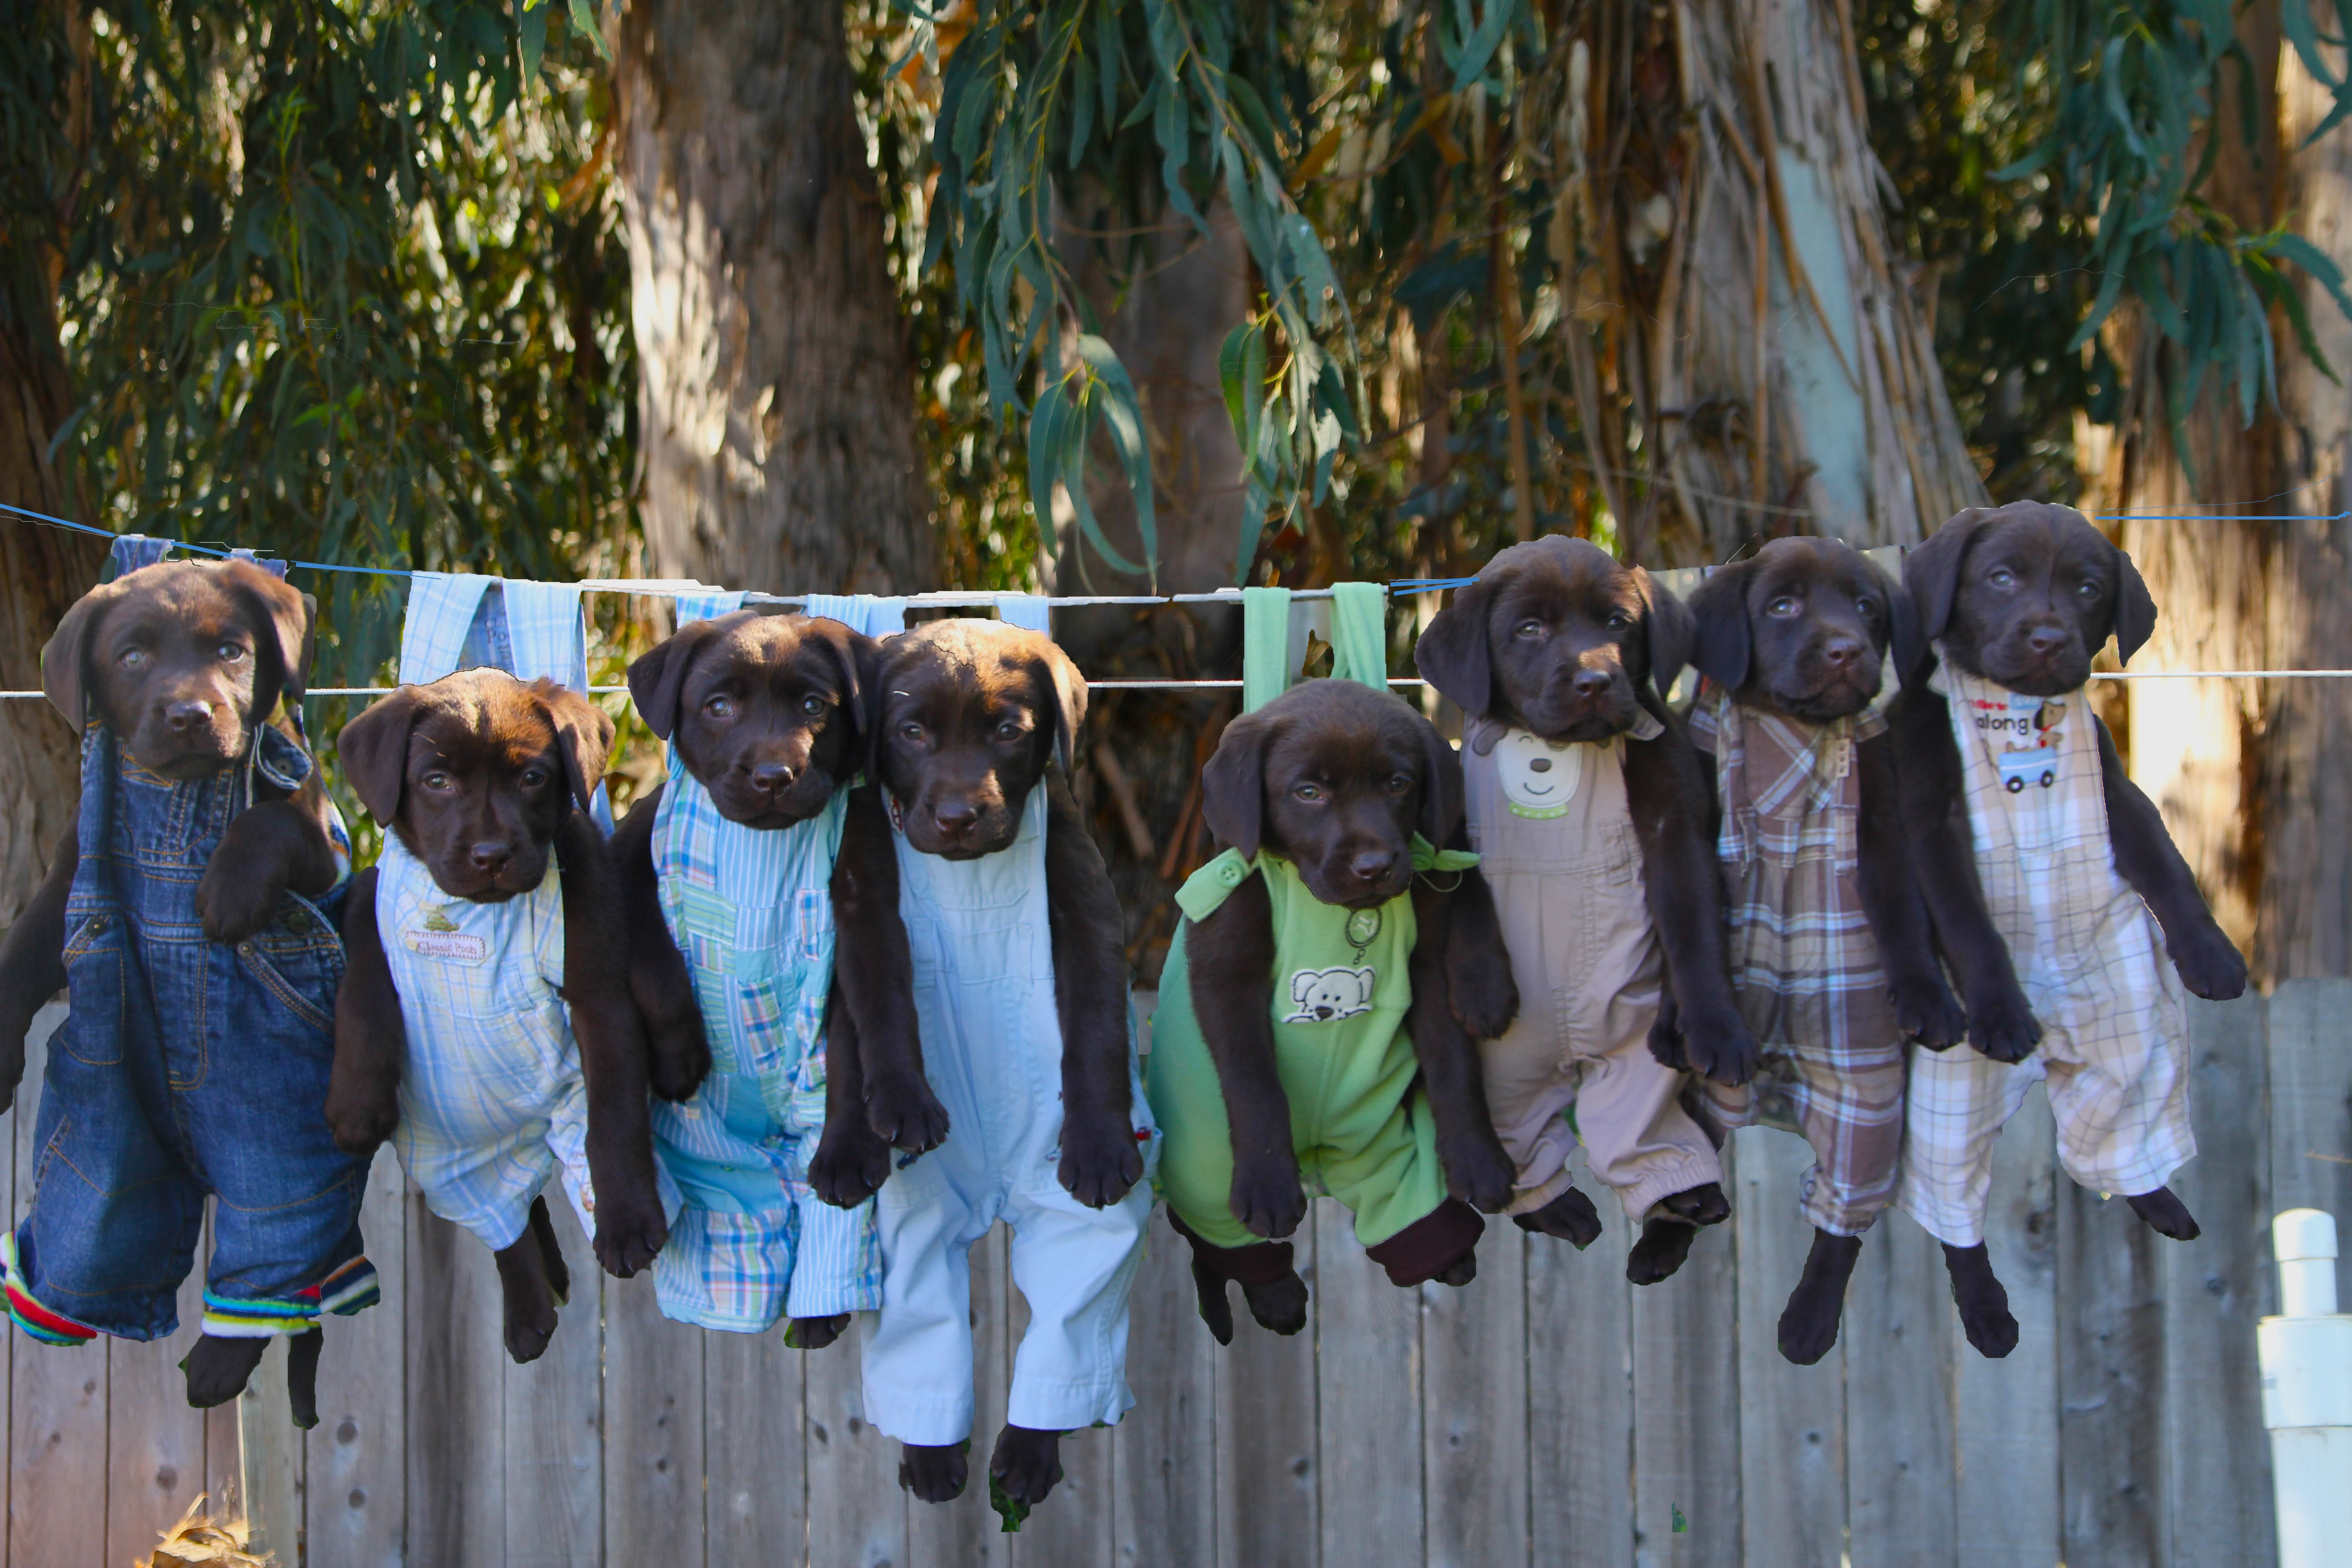 Chocolate lab puppies hanging out on the clothesline